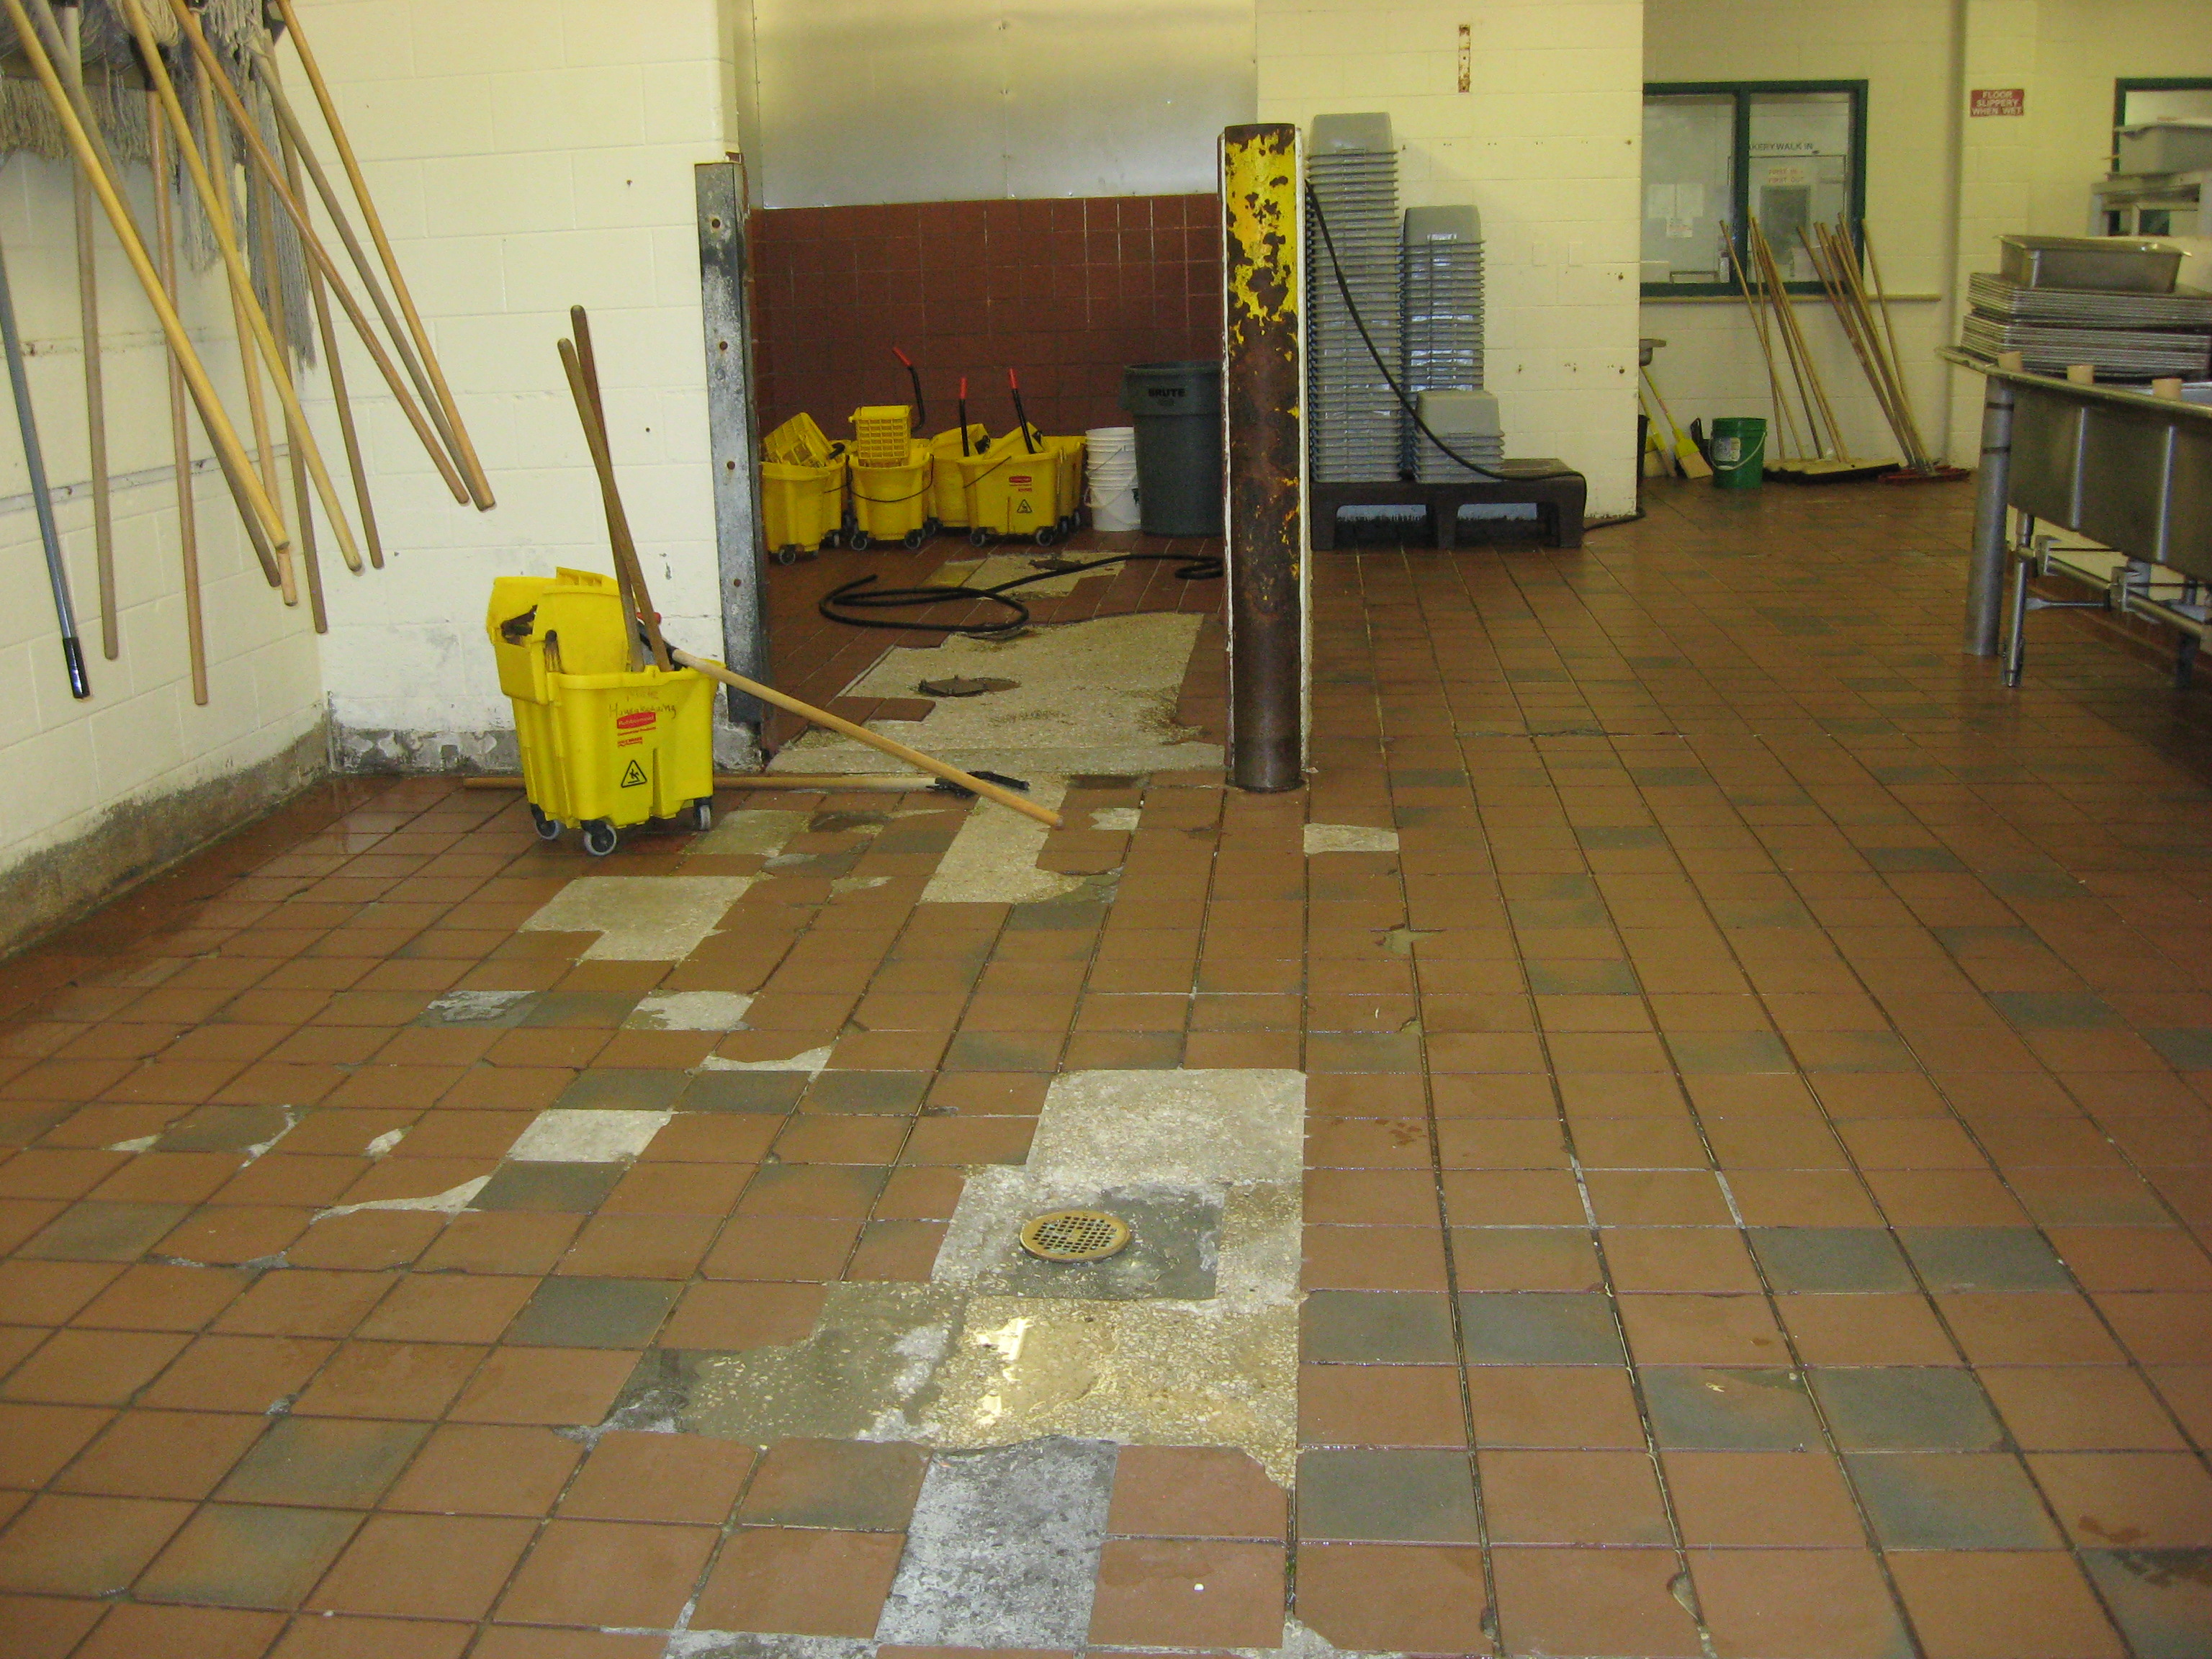 Restroom Flooring 101: Epoxy Beats Ceramic Tile Hands Down for ...